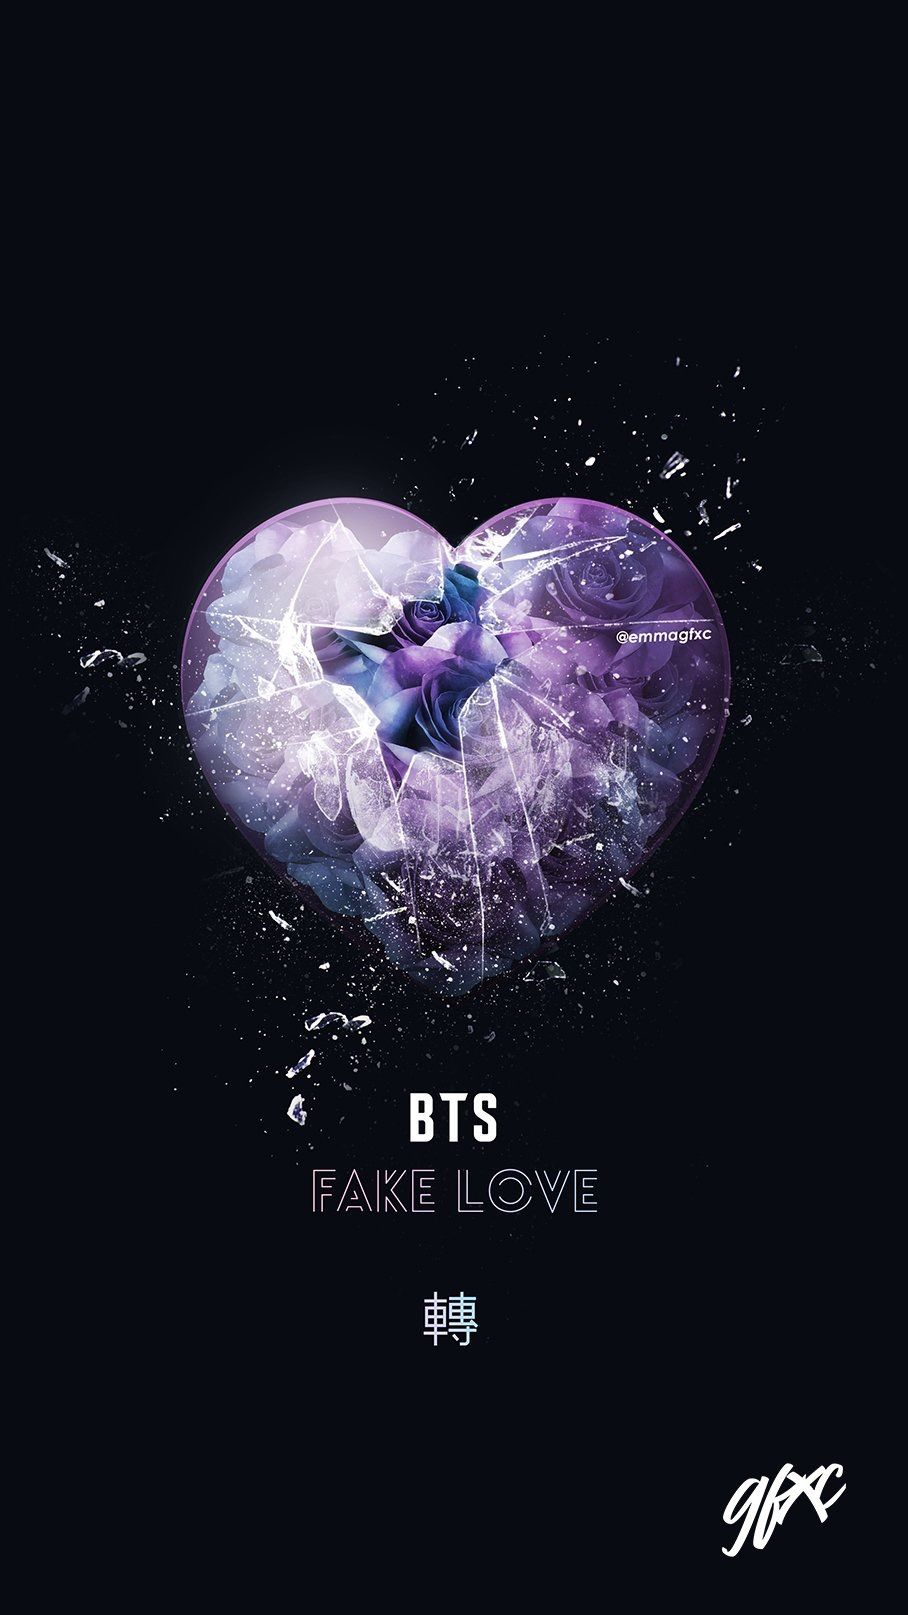 I'm So Sick Of This Fake Love Fake Love - Bts Fake Love Lyrics , HD Wallpaper & Backgrounds